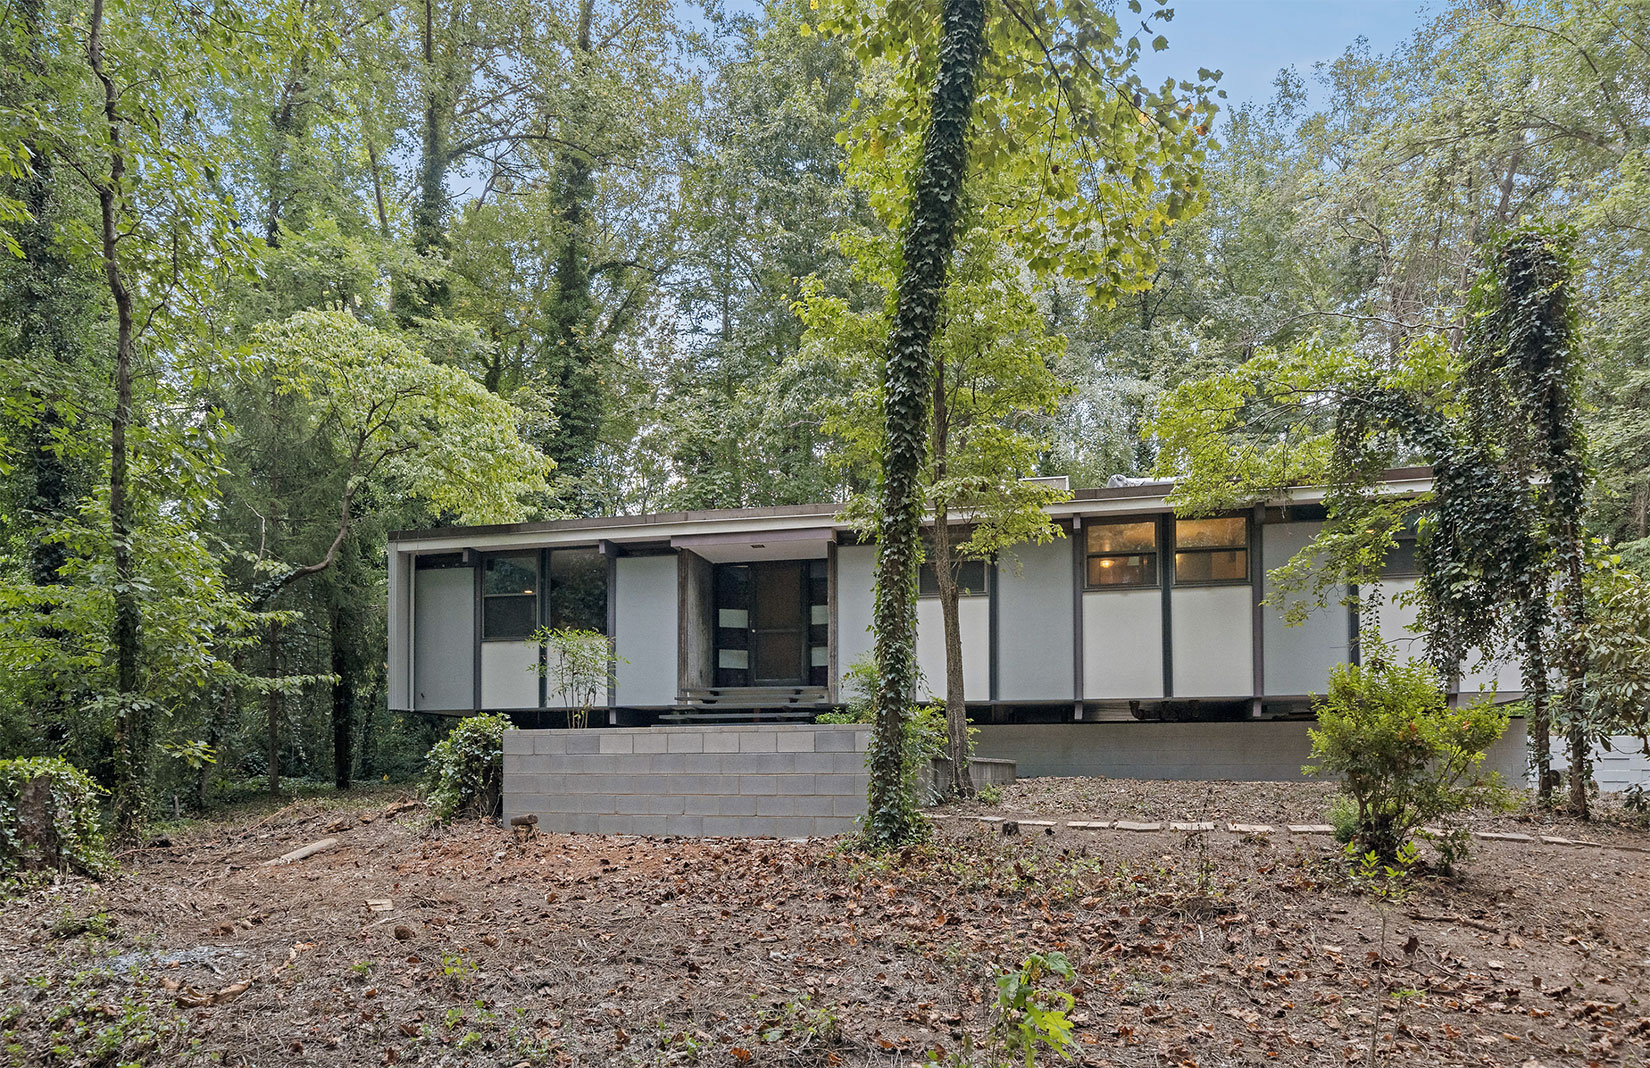 An architect's midcentury home lists in the foothills of the Appalachian Mountains